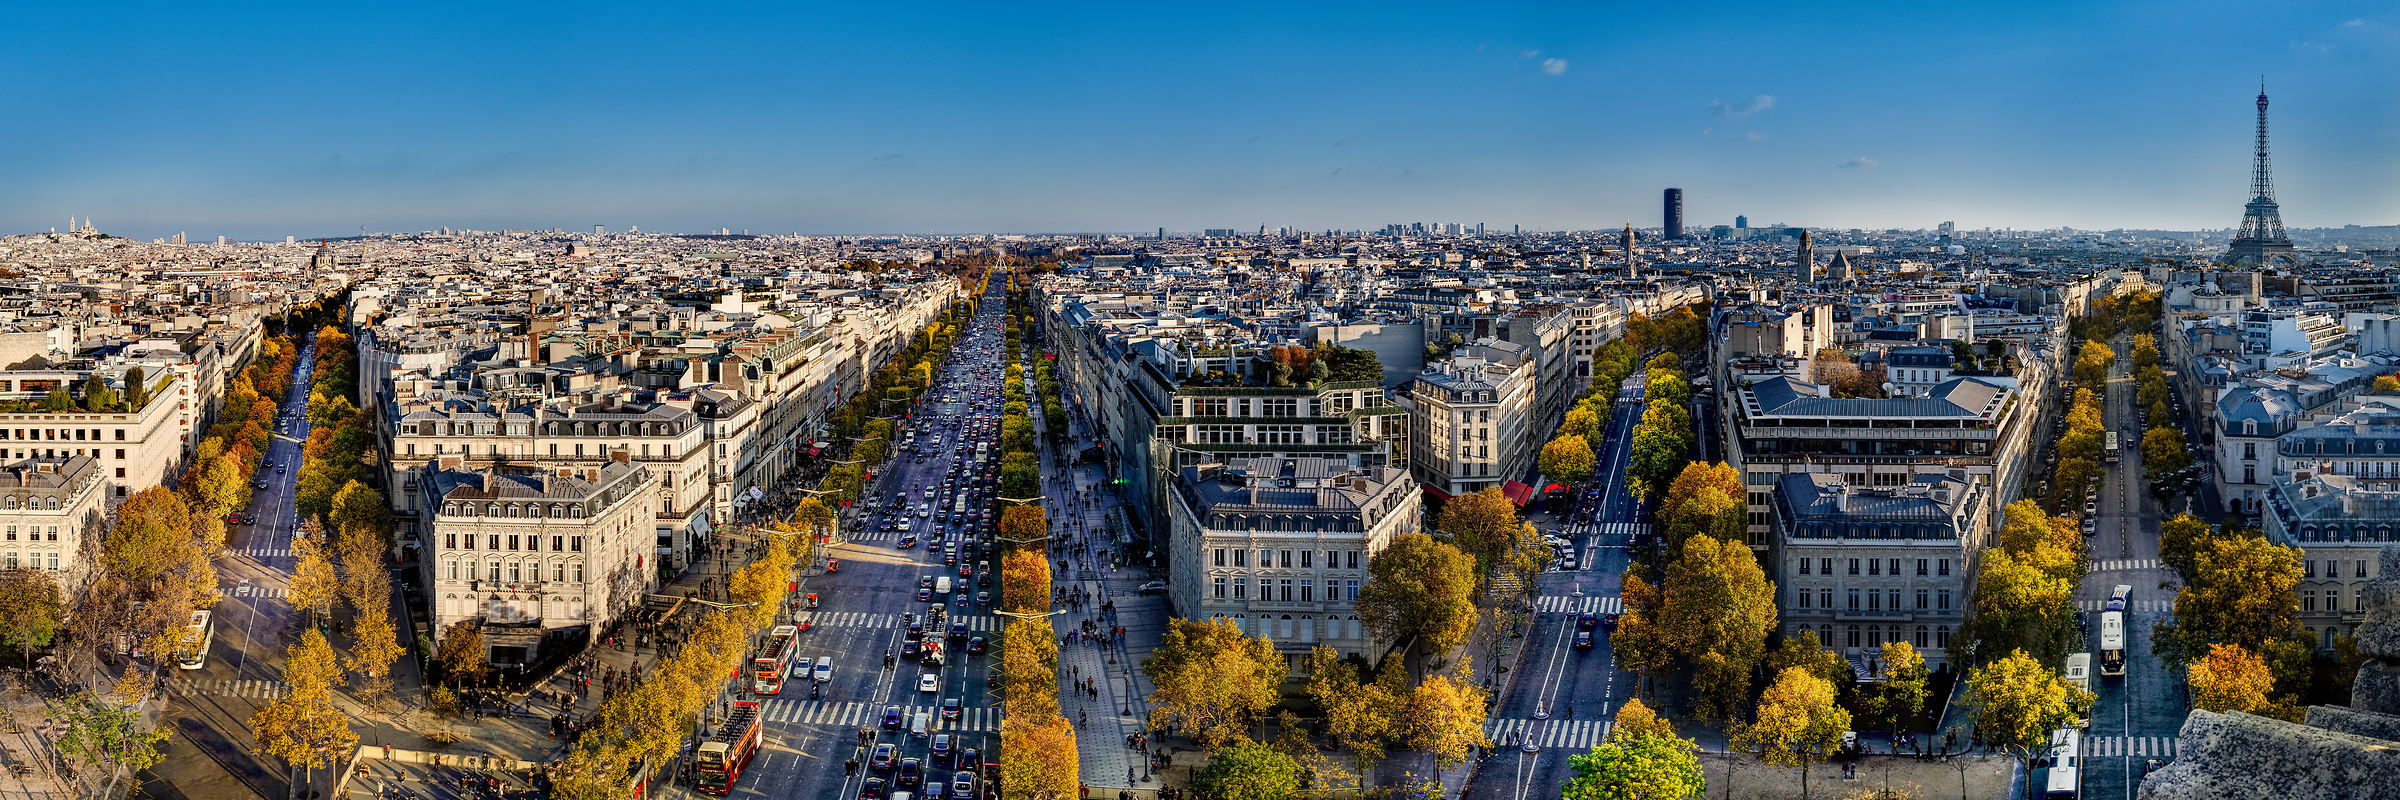 168 megapixels! A very high resolution, large-format VAST photo print of the Paris skyline; cityscape photograph created by Tim Lo Monaco at the Arc de Triomphe, Paris, France